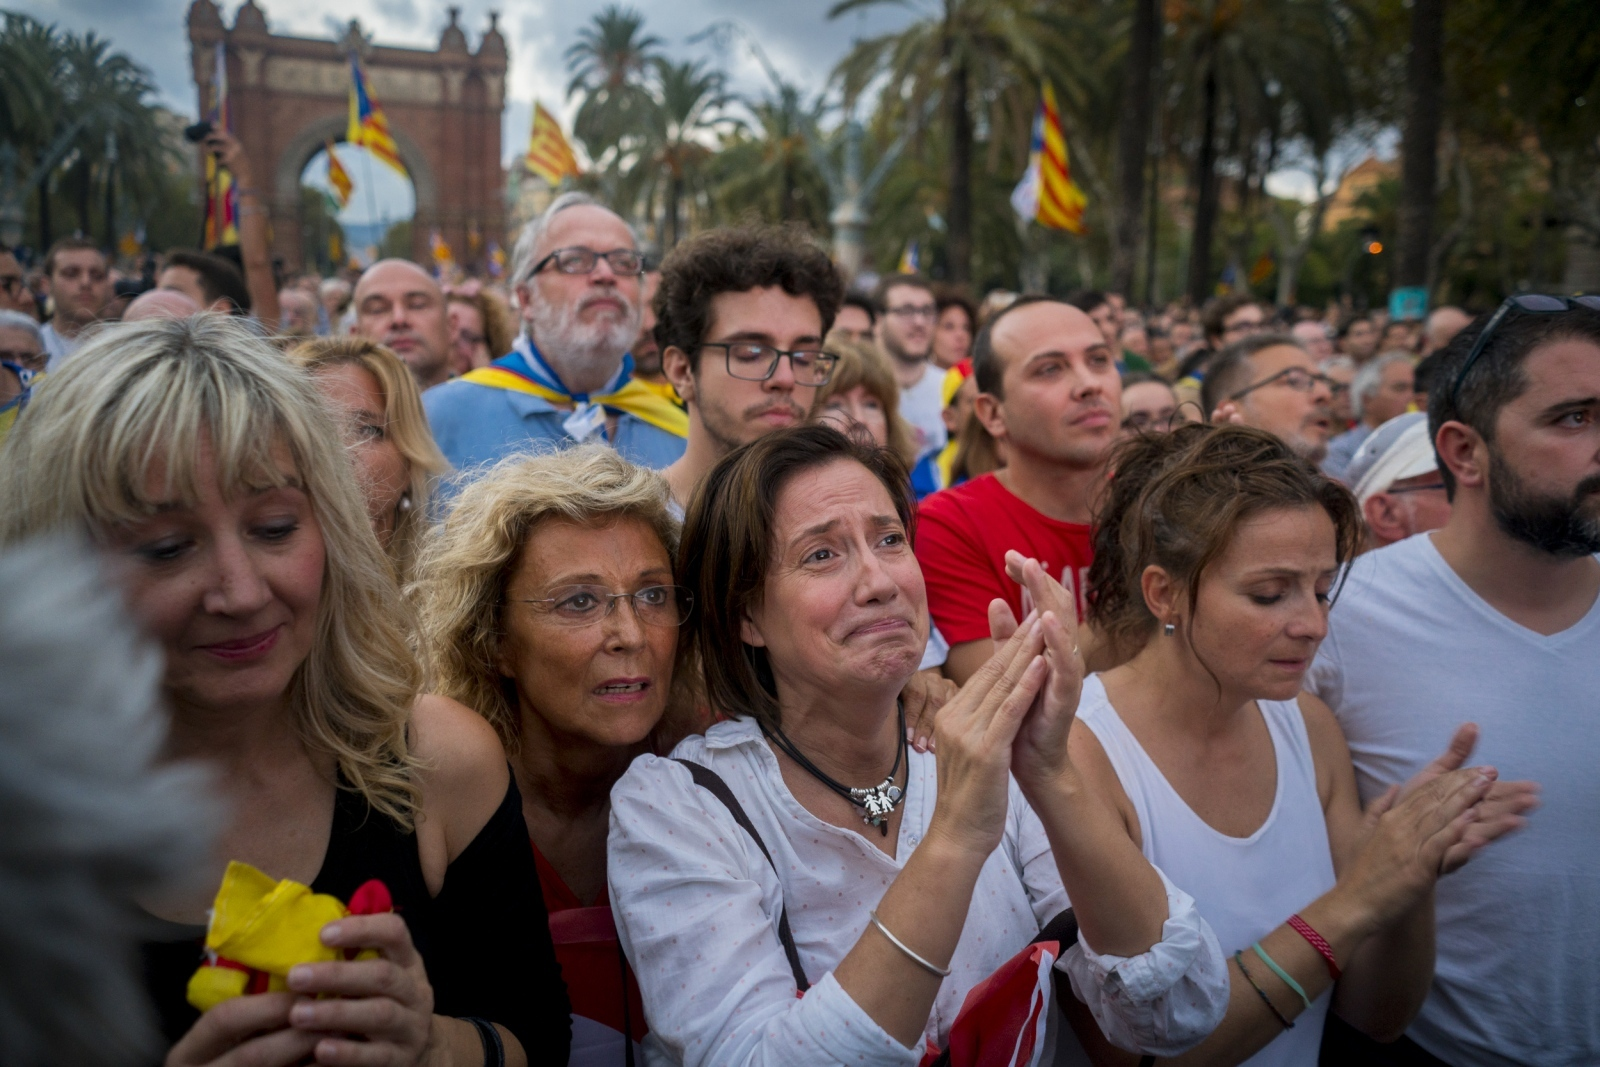 Muntsa Casas watches Catalan President Puigdemont's speech on a mega-screen in Barcelona on October 10th, 2017. After declaring independence, the President invoked a pause for dialog before Catalonia begins a formal process towards becoming an independent state.